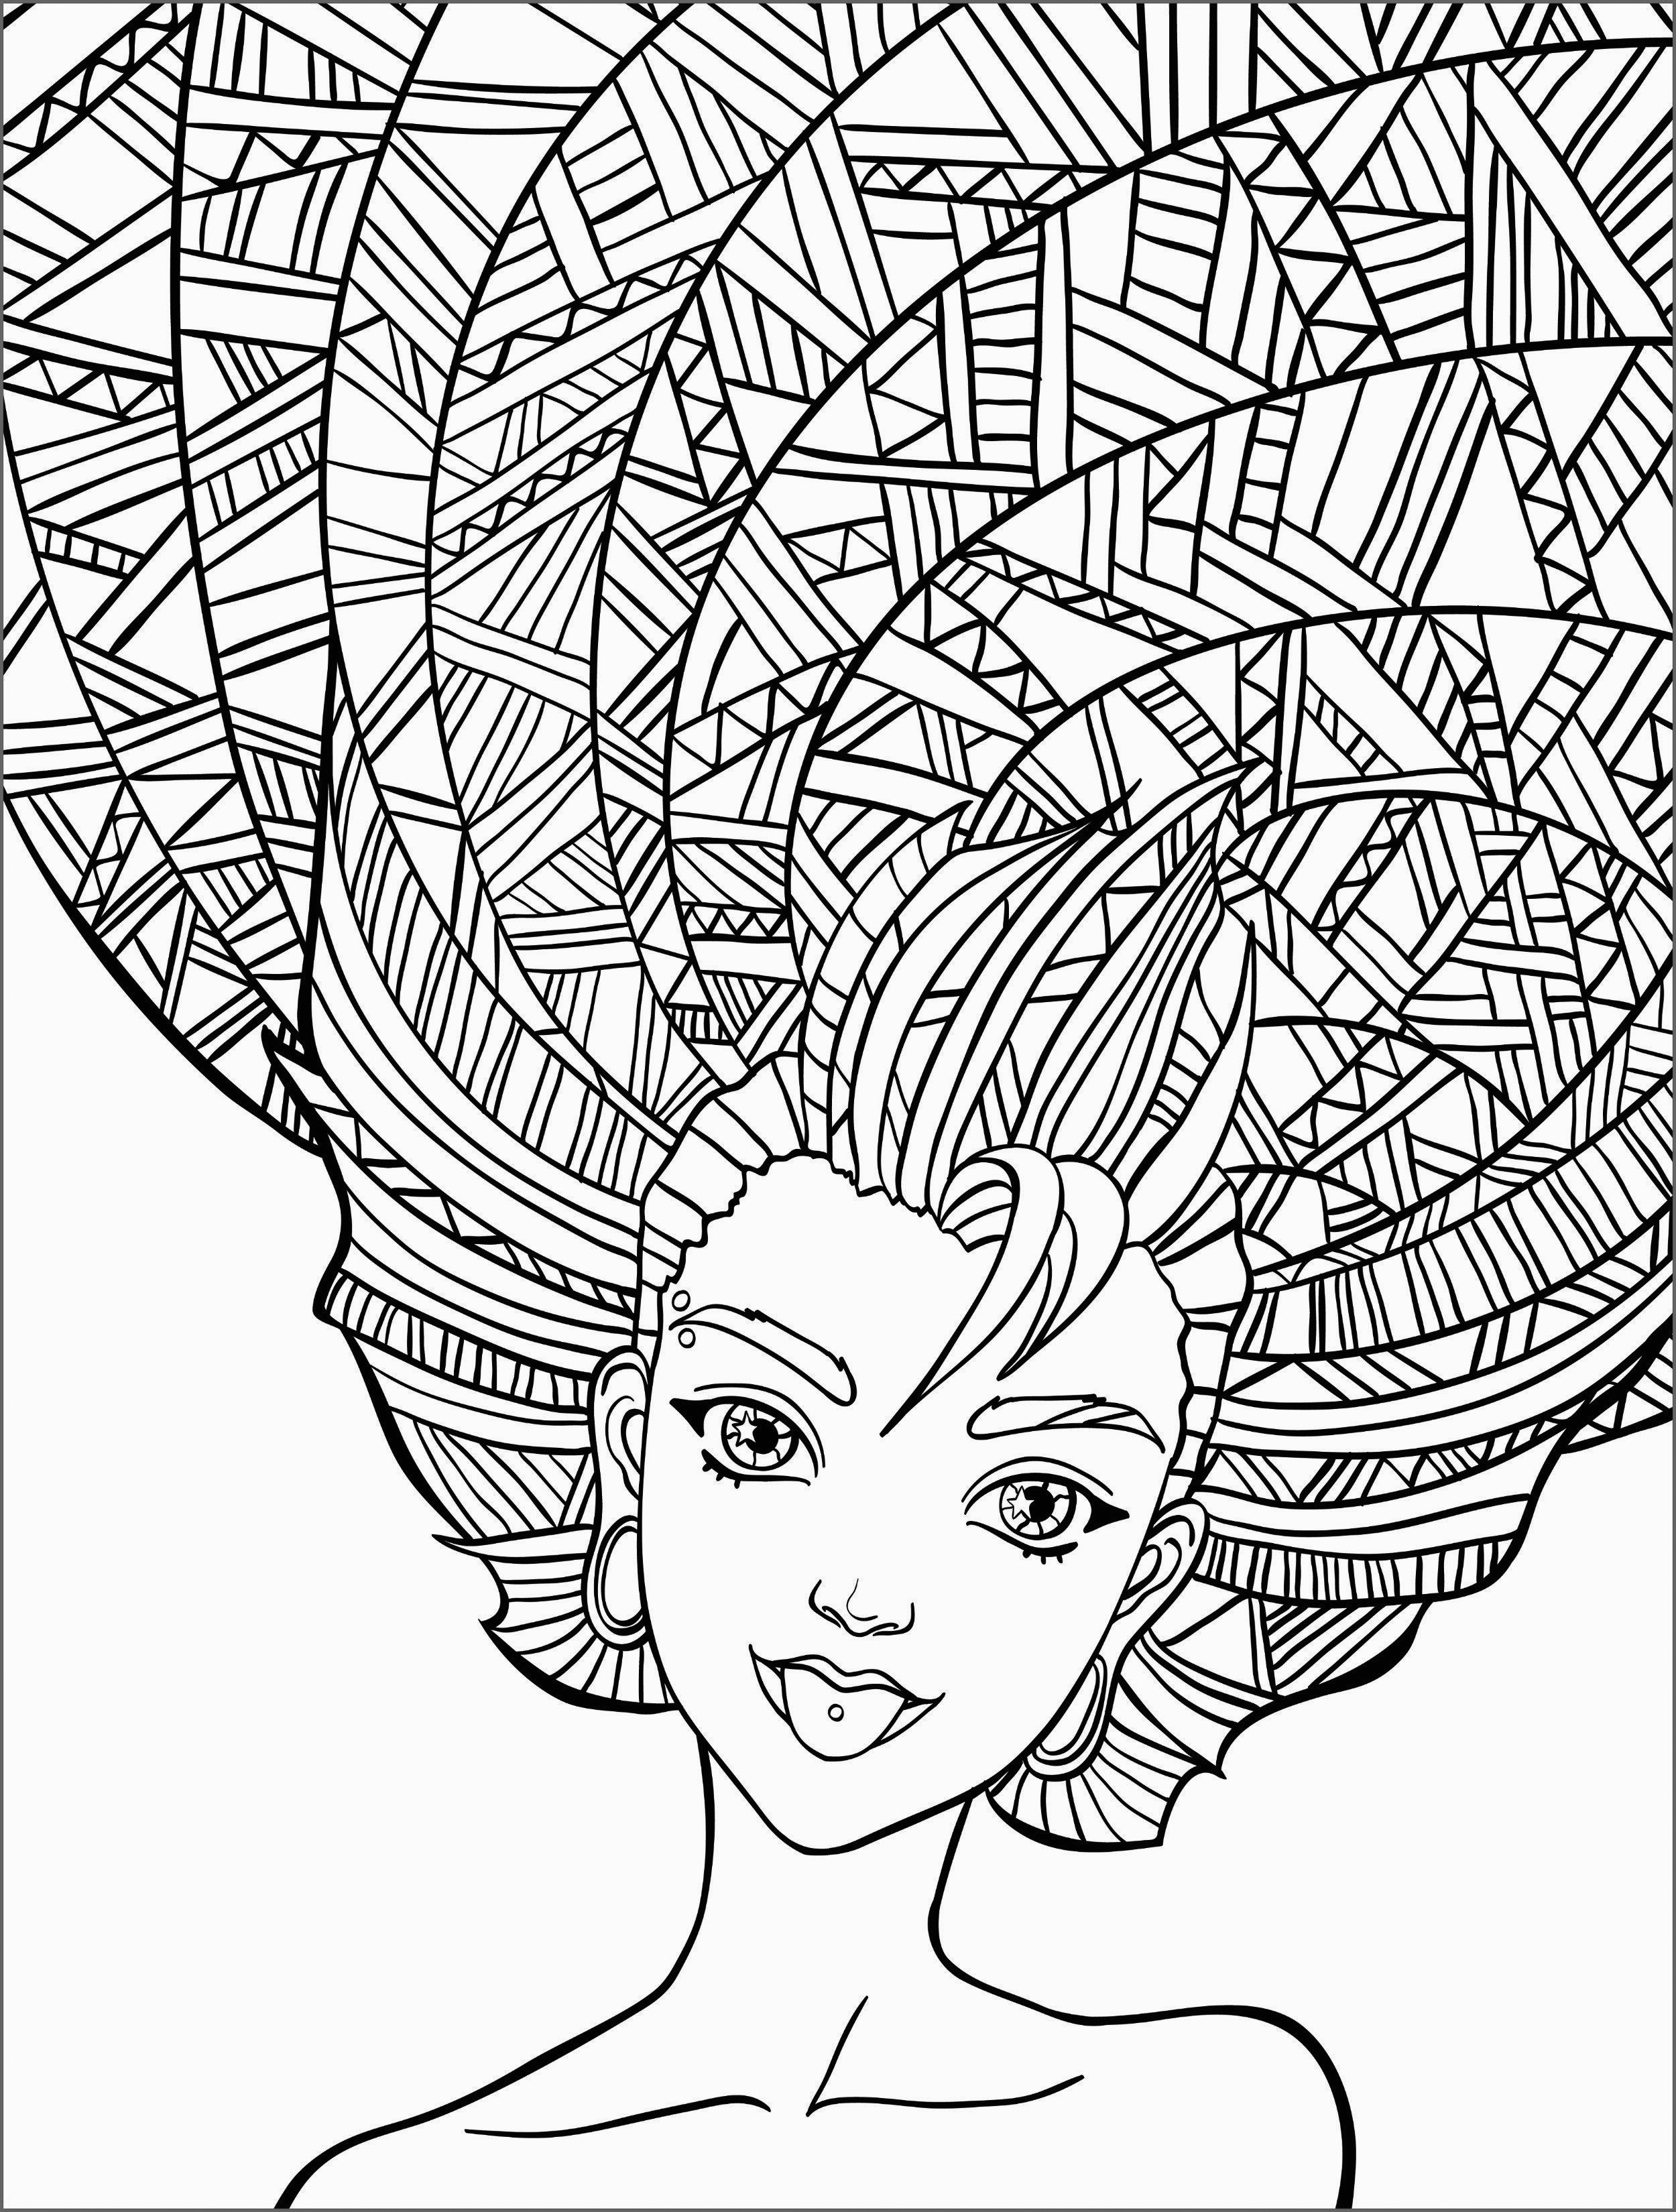 coloring pages of adults adult coloring pages animals best coloring pages for kids coloring pages adults of